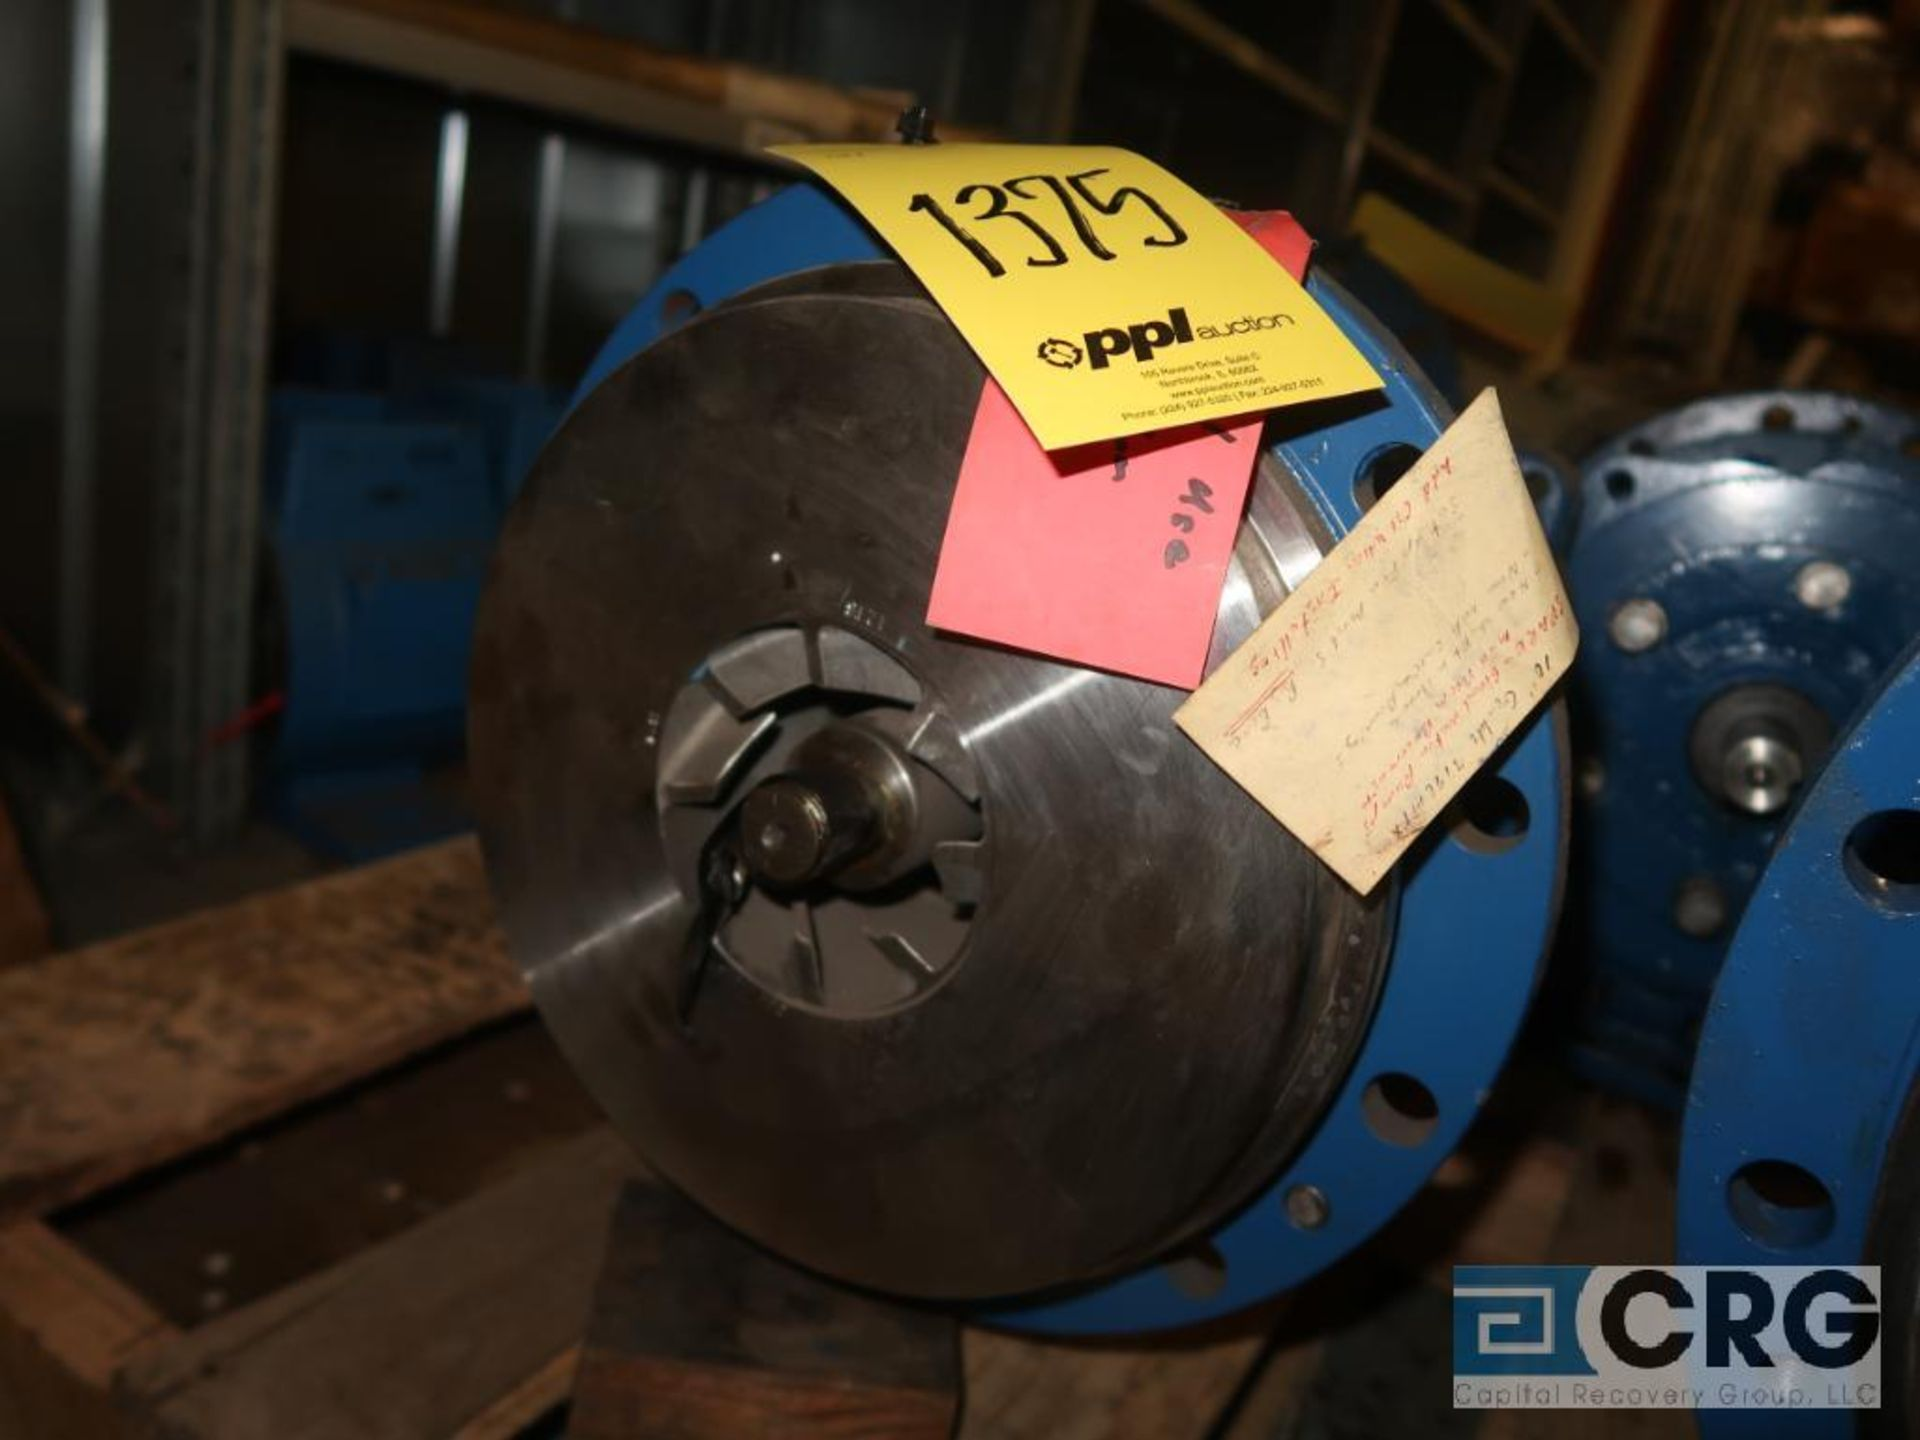 Lot of (3) Goulds 3196 MTX 10 in. pumps (Basement Stores) - Image 3 of 3